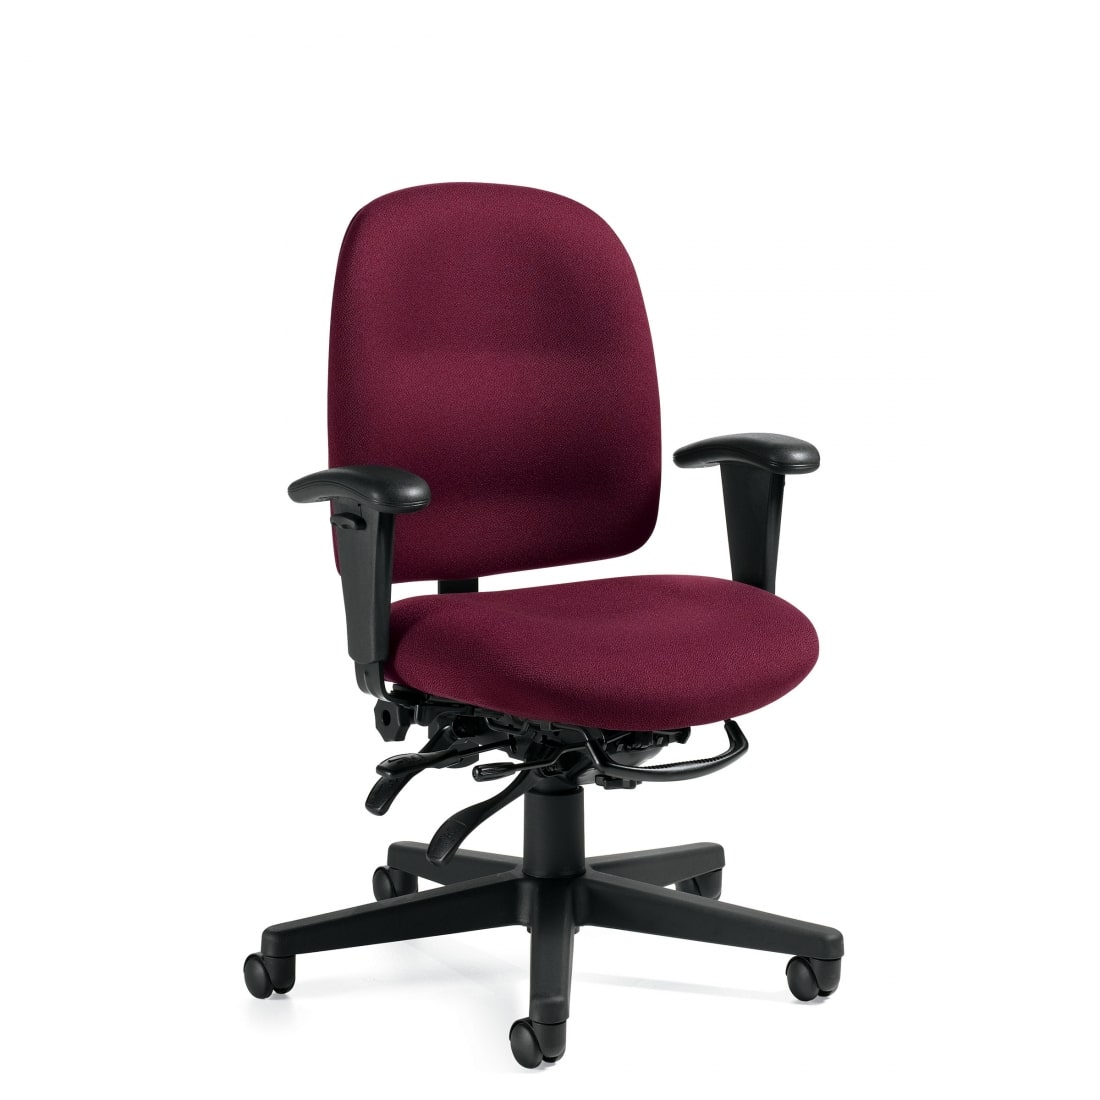 office chair rental cheap patio covers industrial cleanroom collection